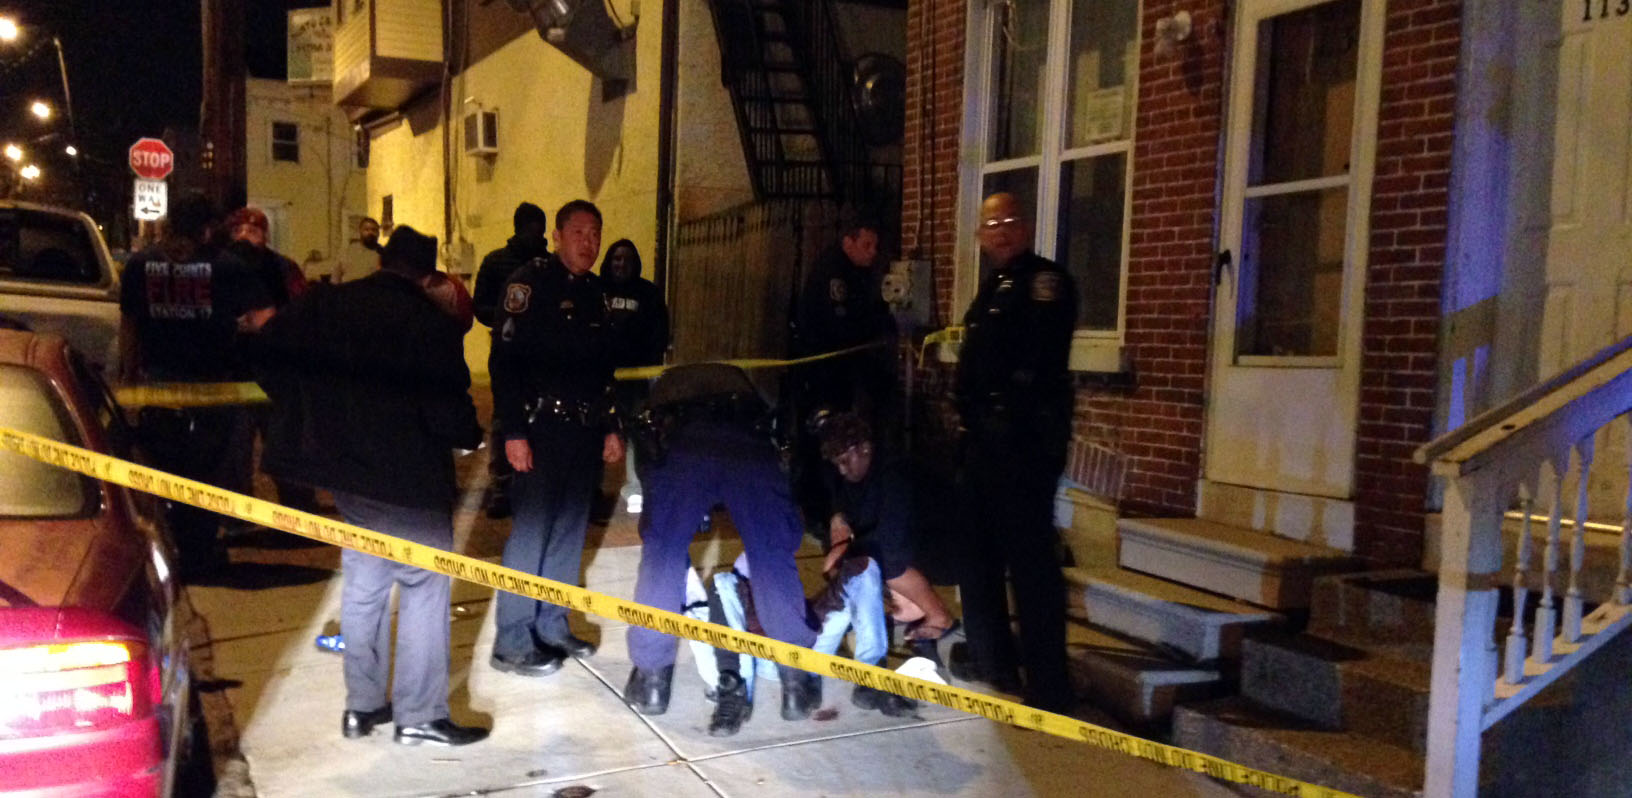 Wilmington police investigate shooting in the 1100 block of Read St. (Photo: Delaware Free News)